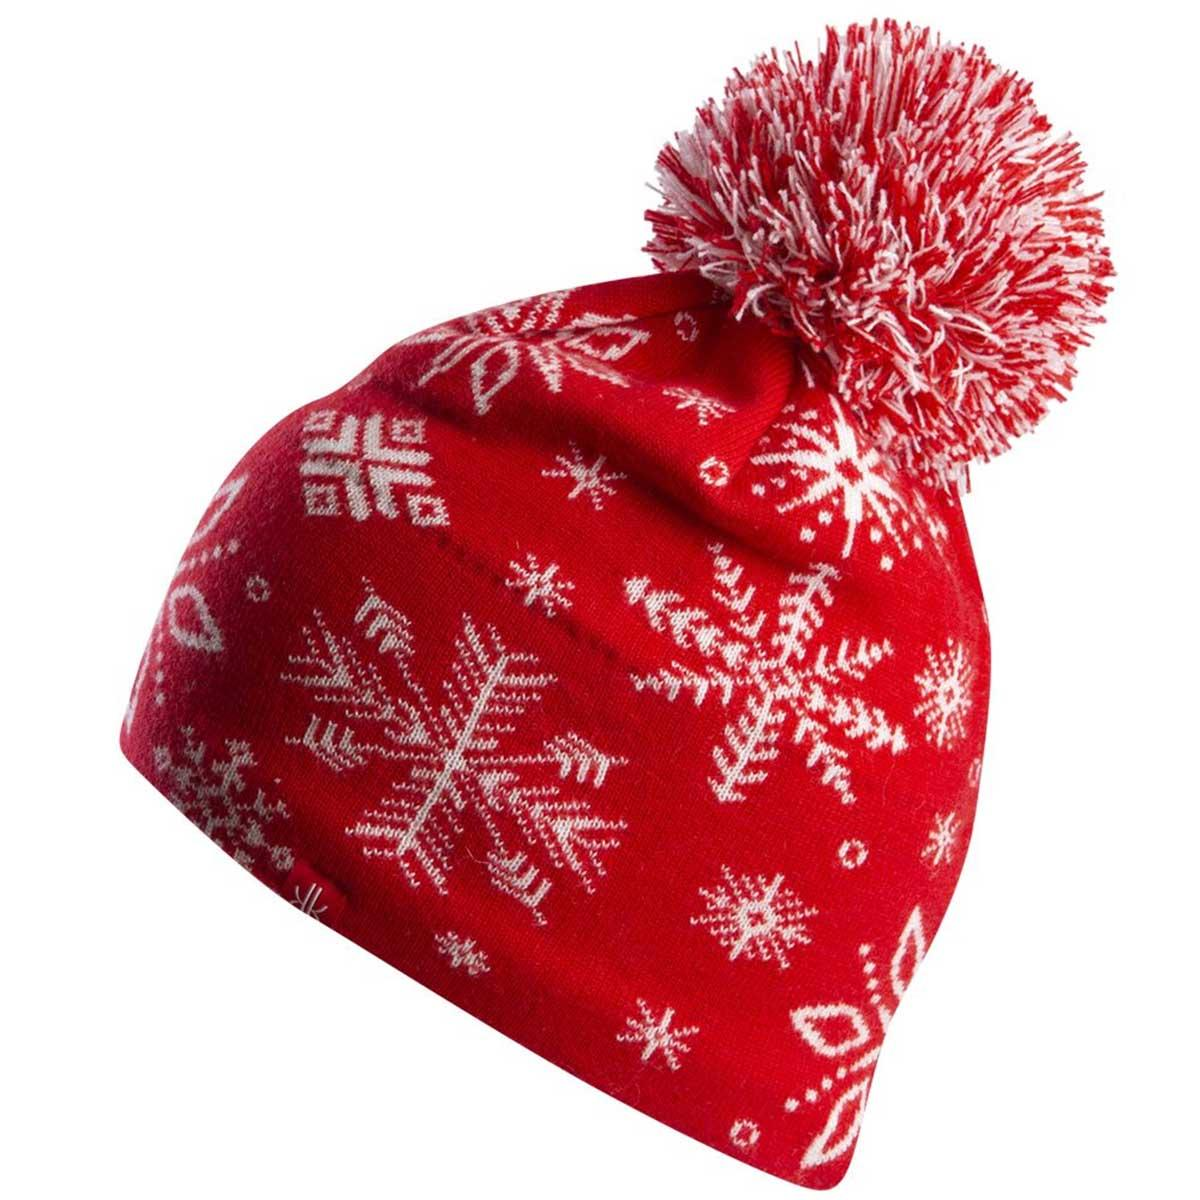 Krimson Klover Women's Snowshoe Beanie in Fiery Red